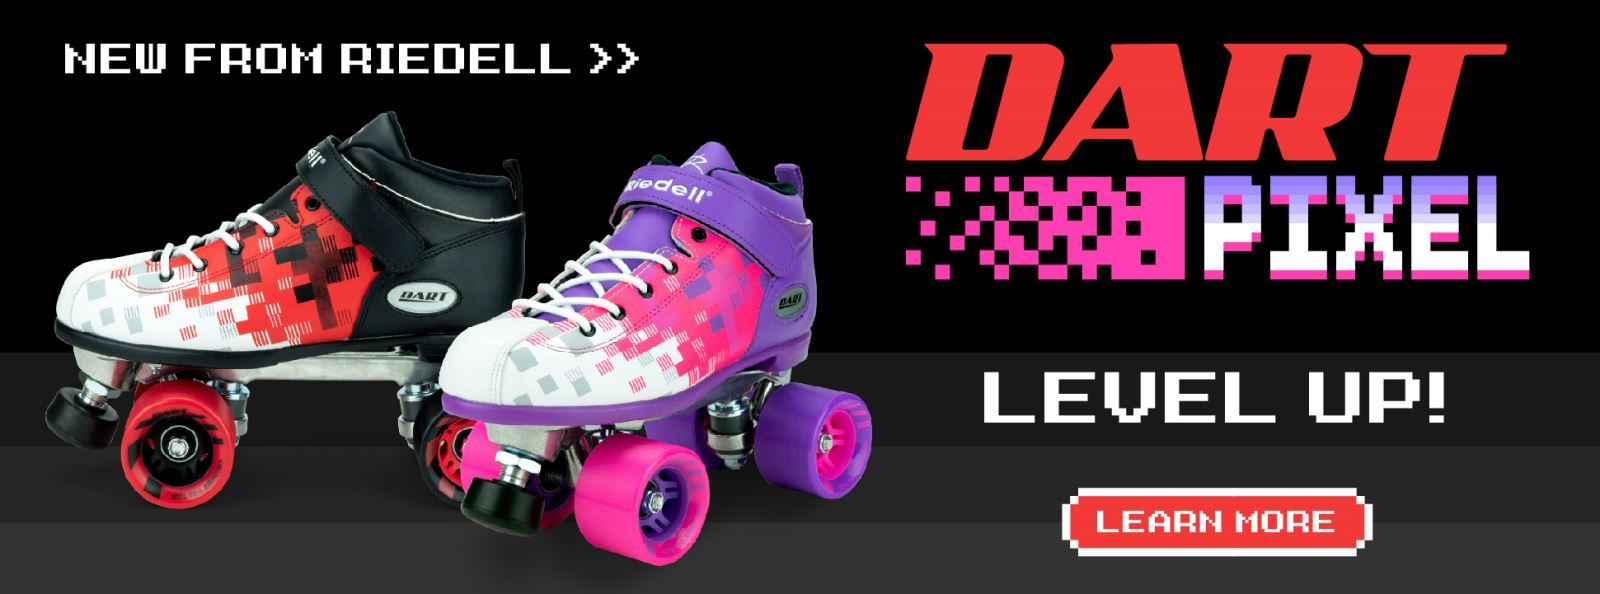 Level up with new Riedell Dart Pixel! Learn more.